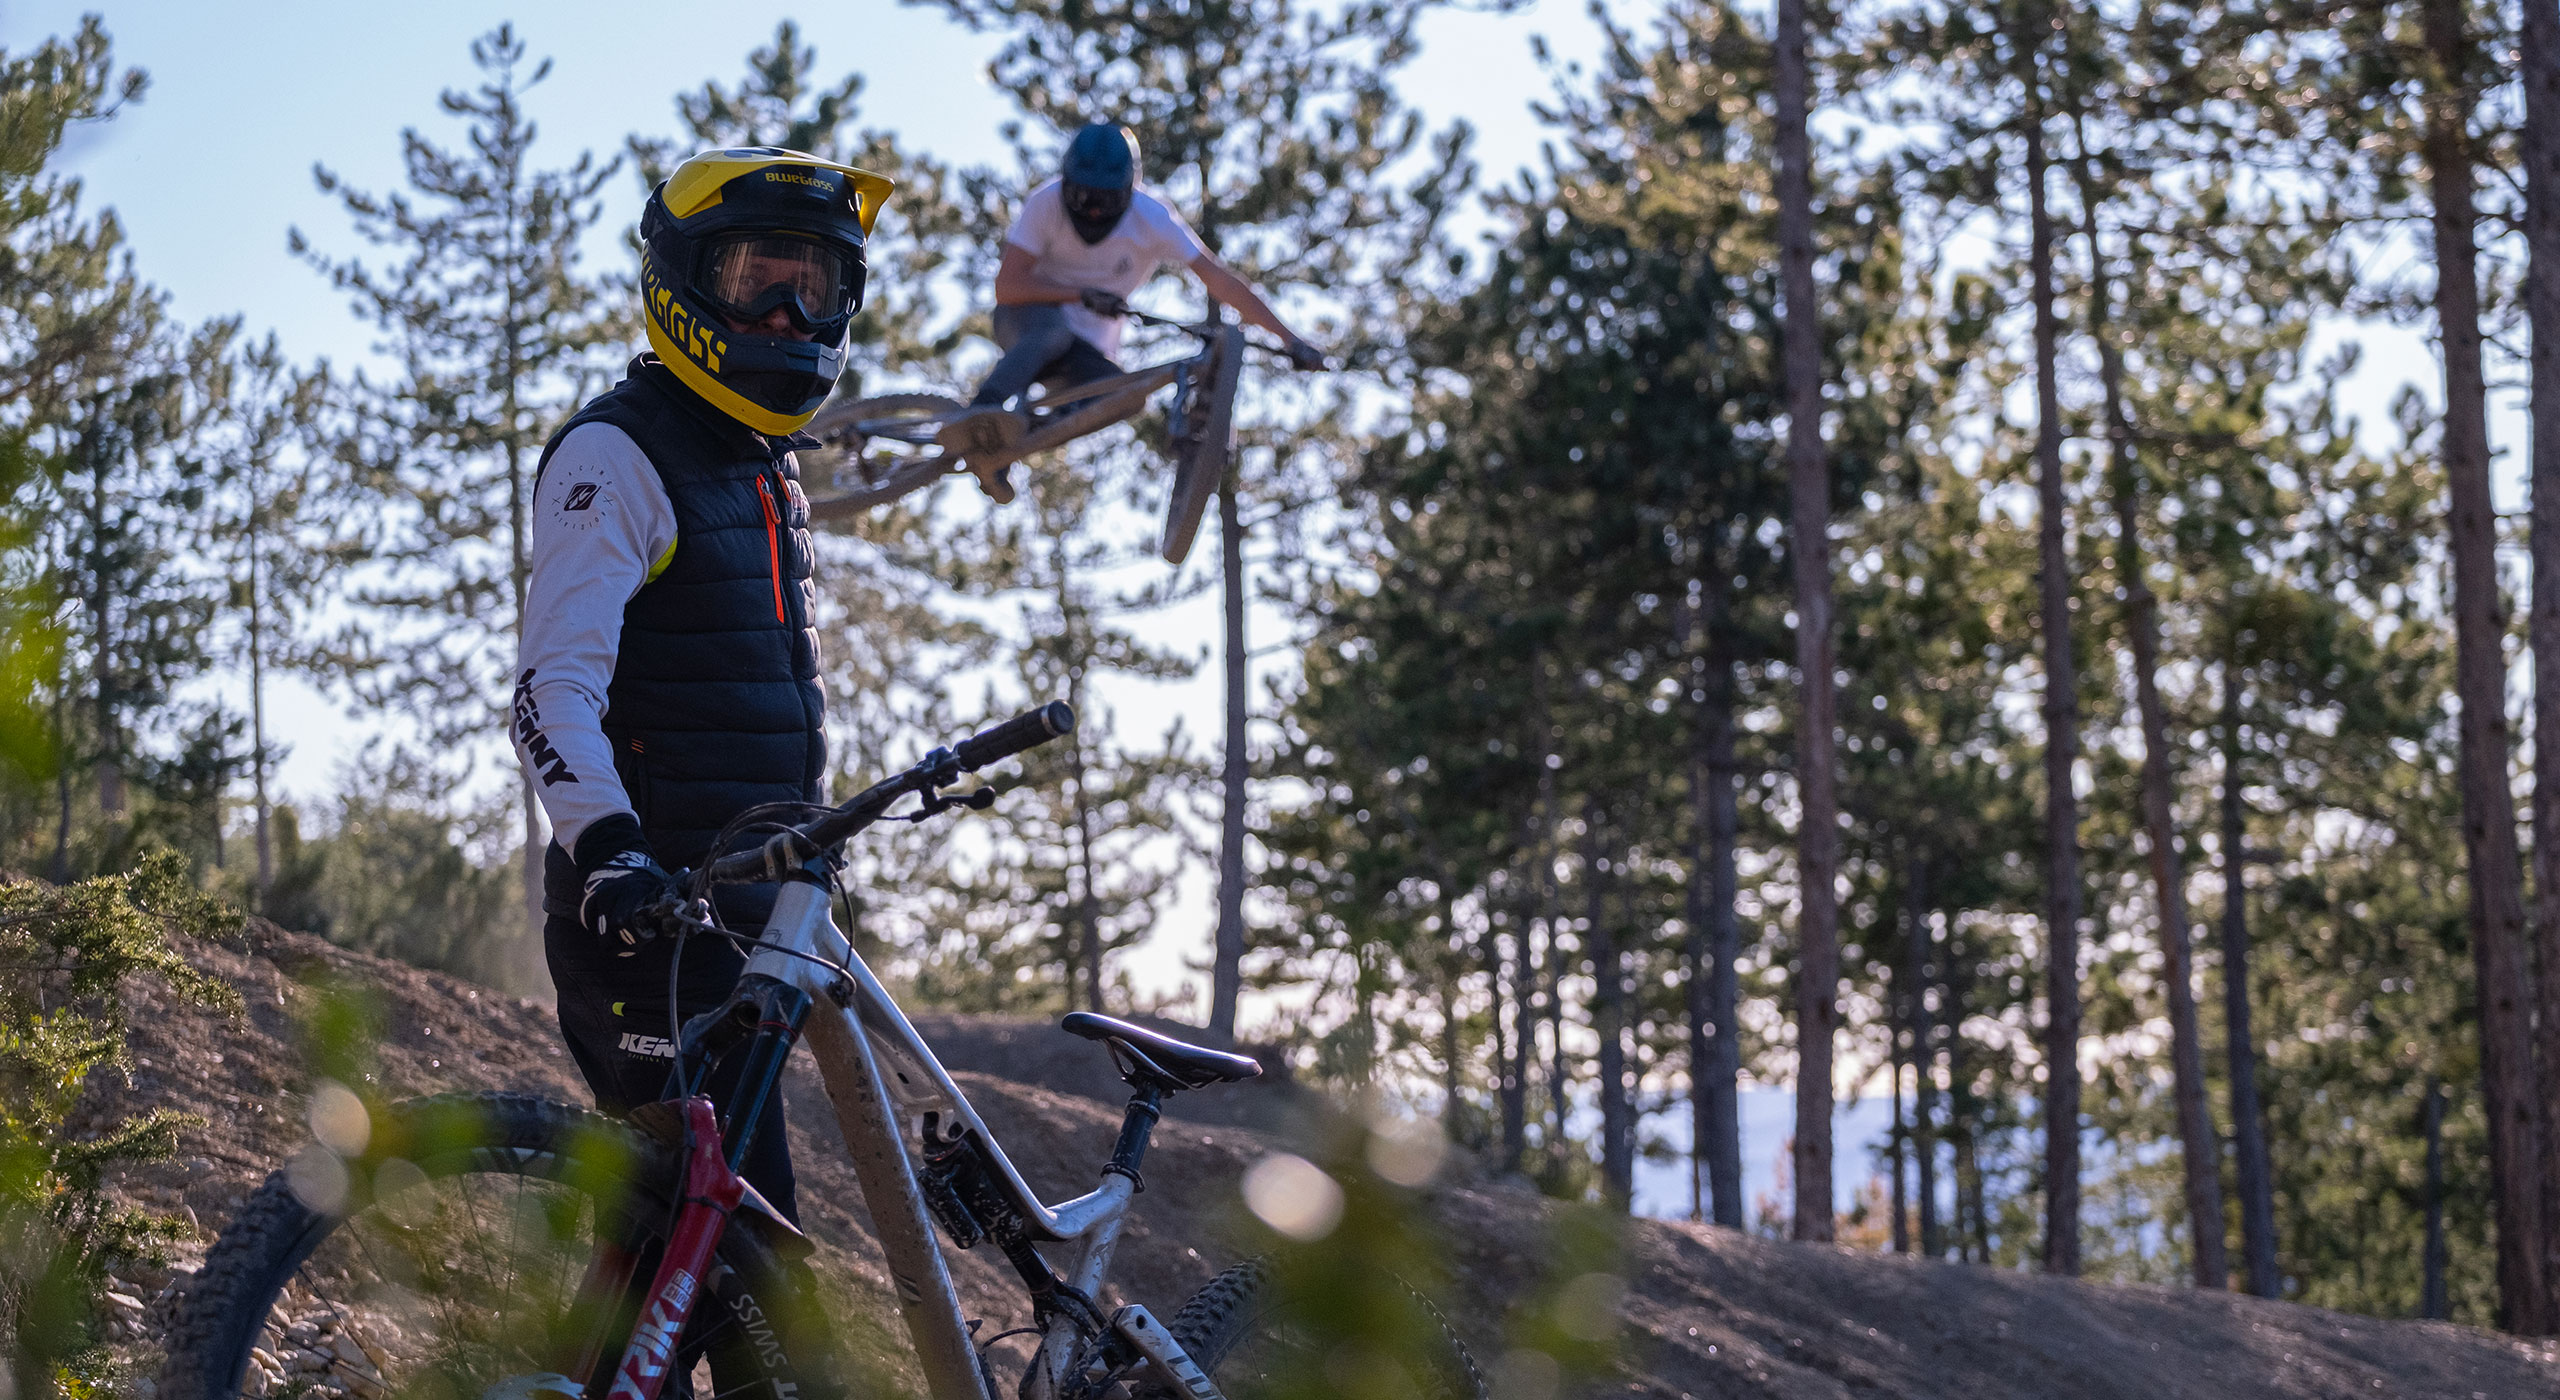 Bluegrass Stories EVO Bike Park located in the South of the French Alps